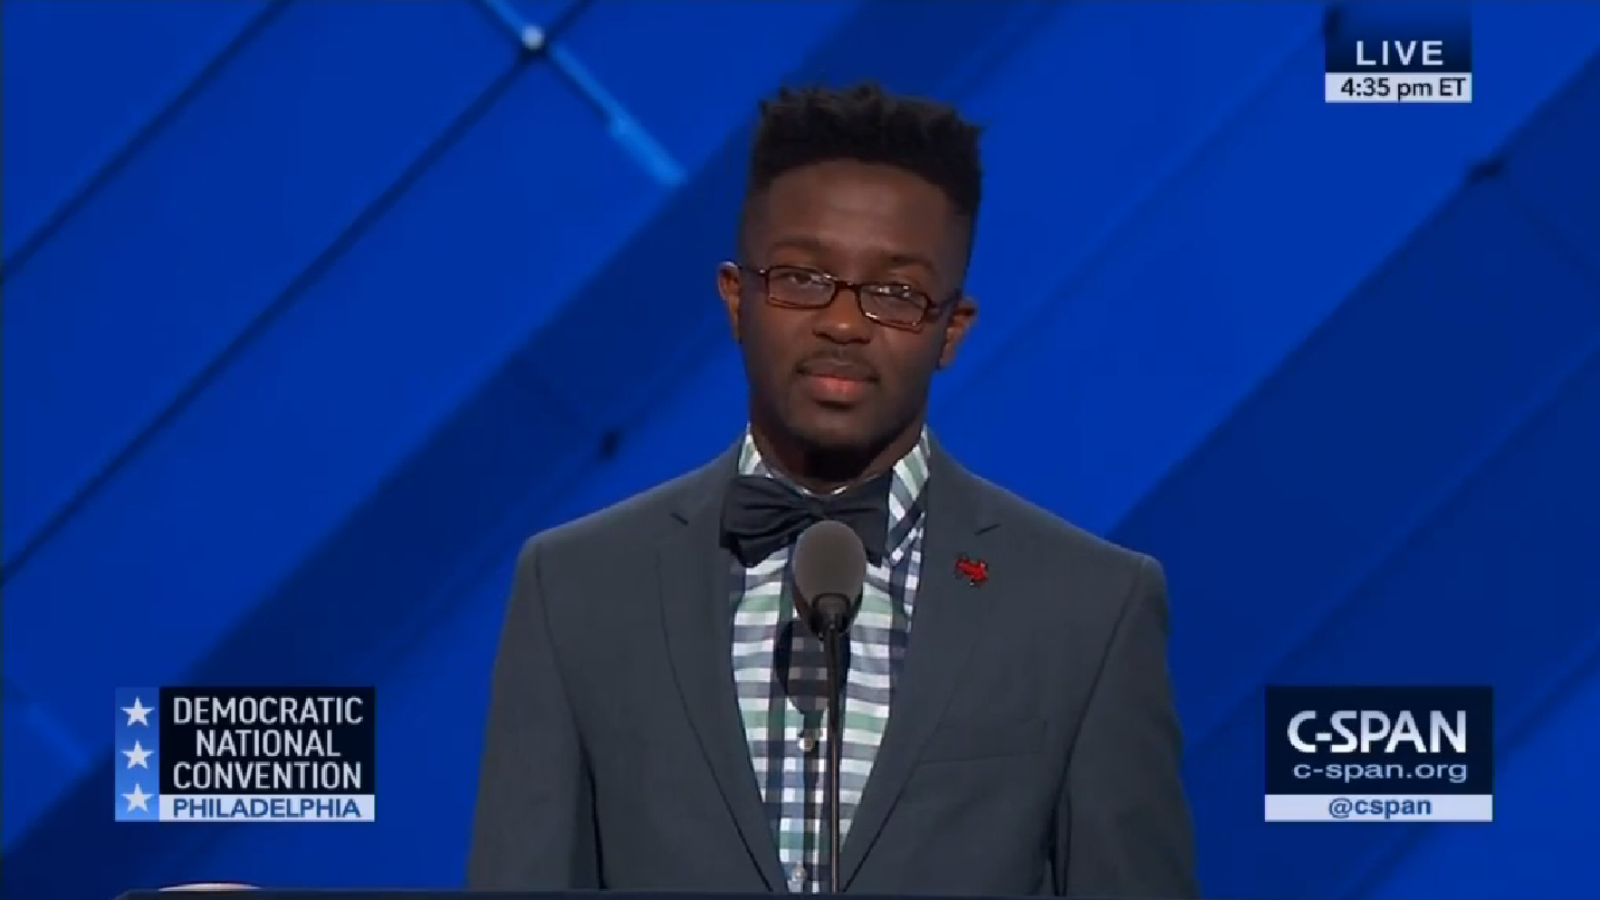 Black Gay Man Takes Center Stage at DNC to Talk About HIV